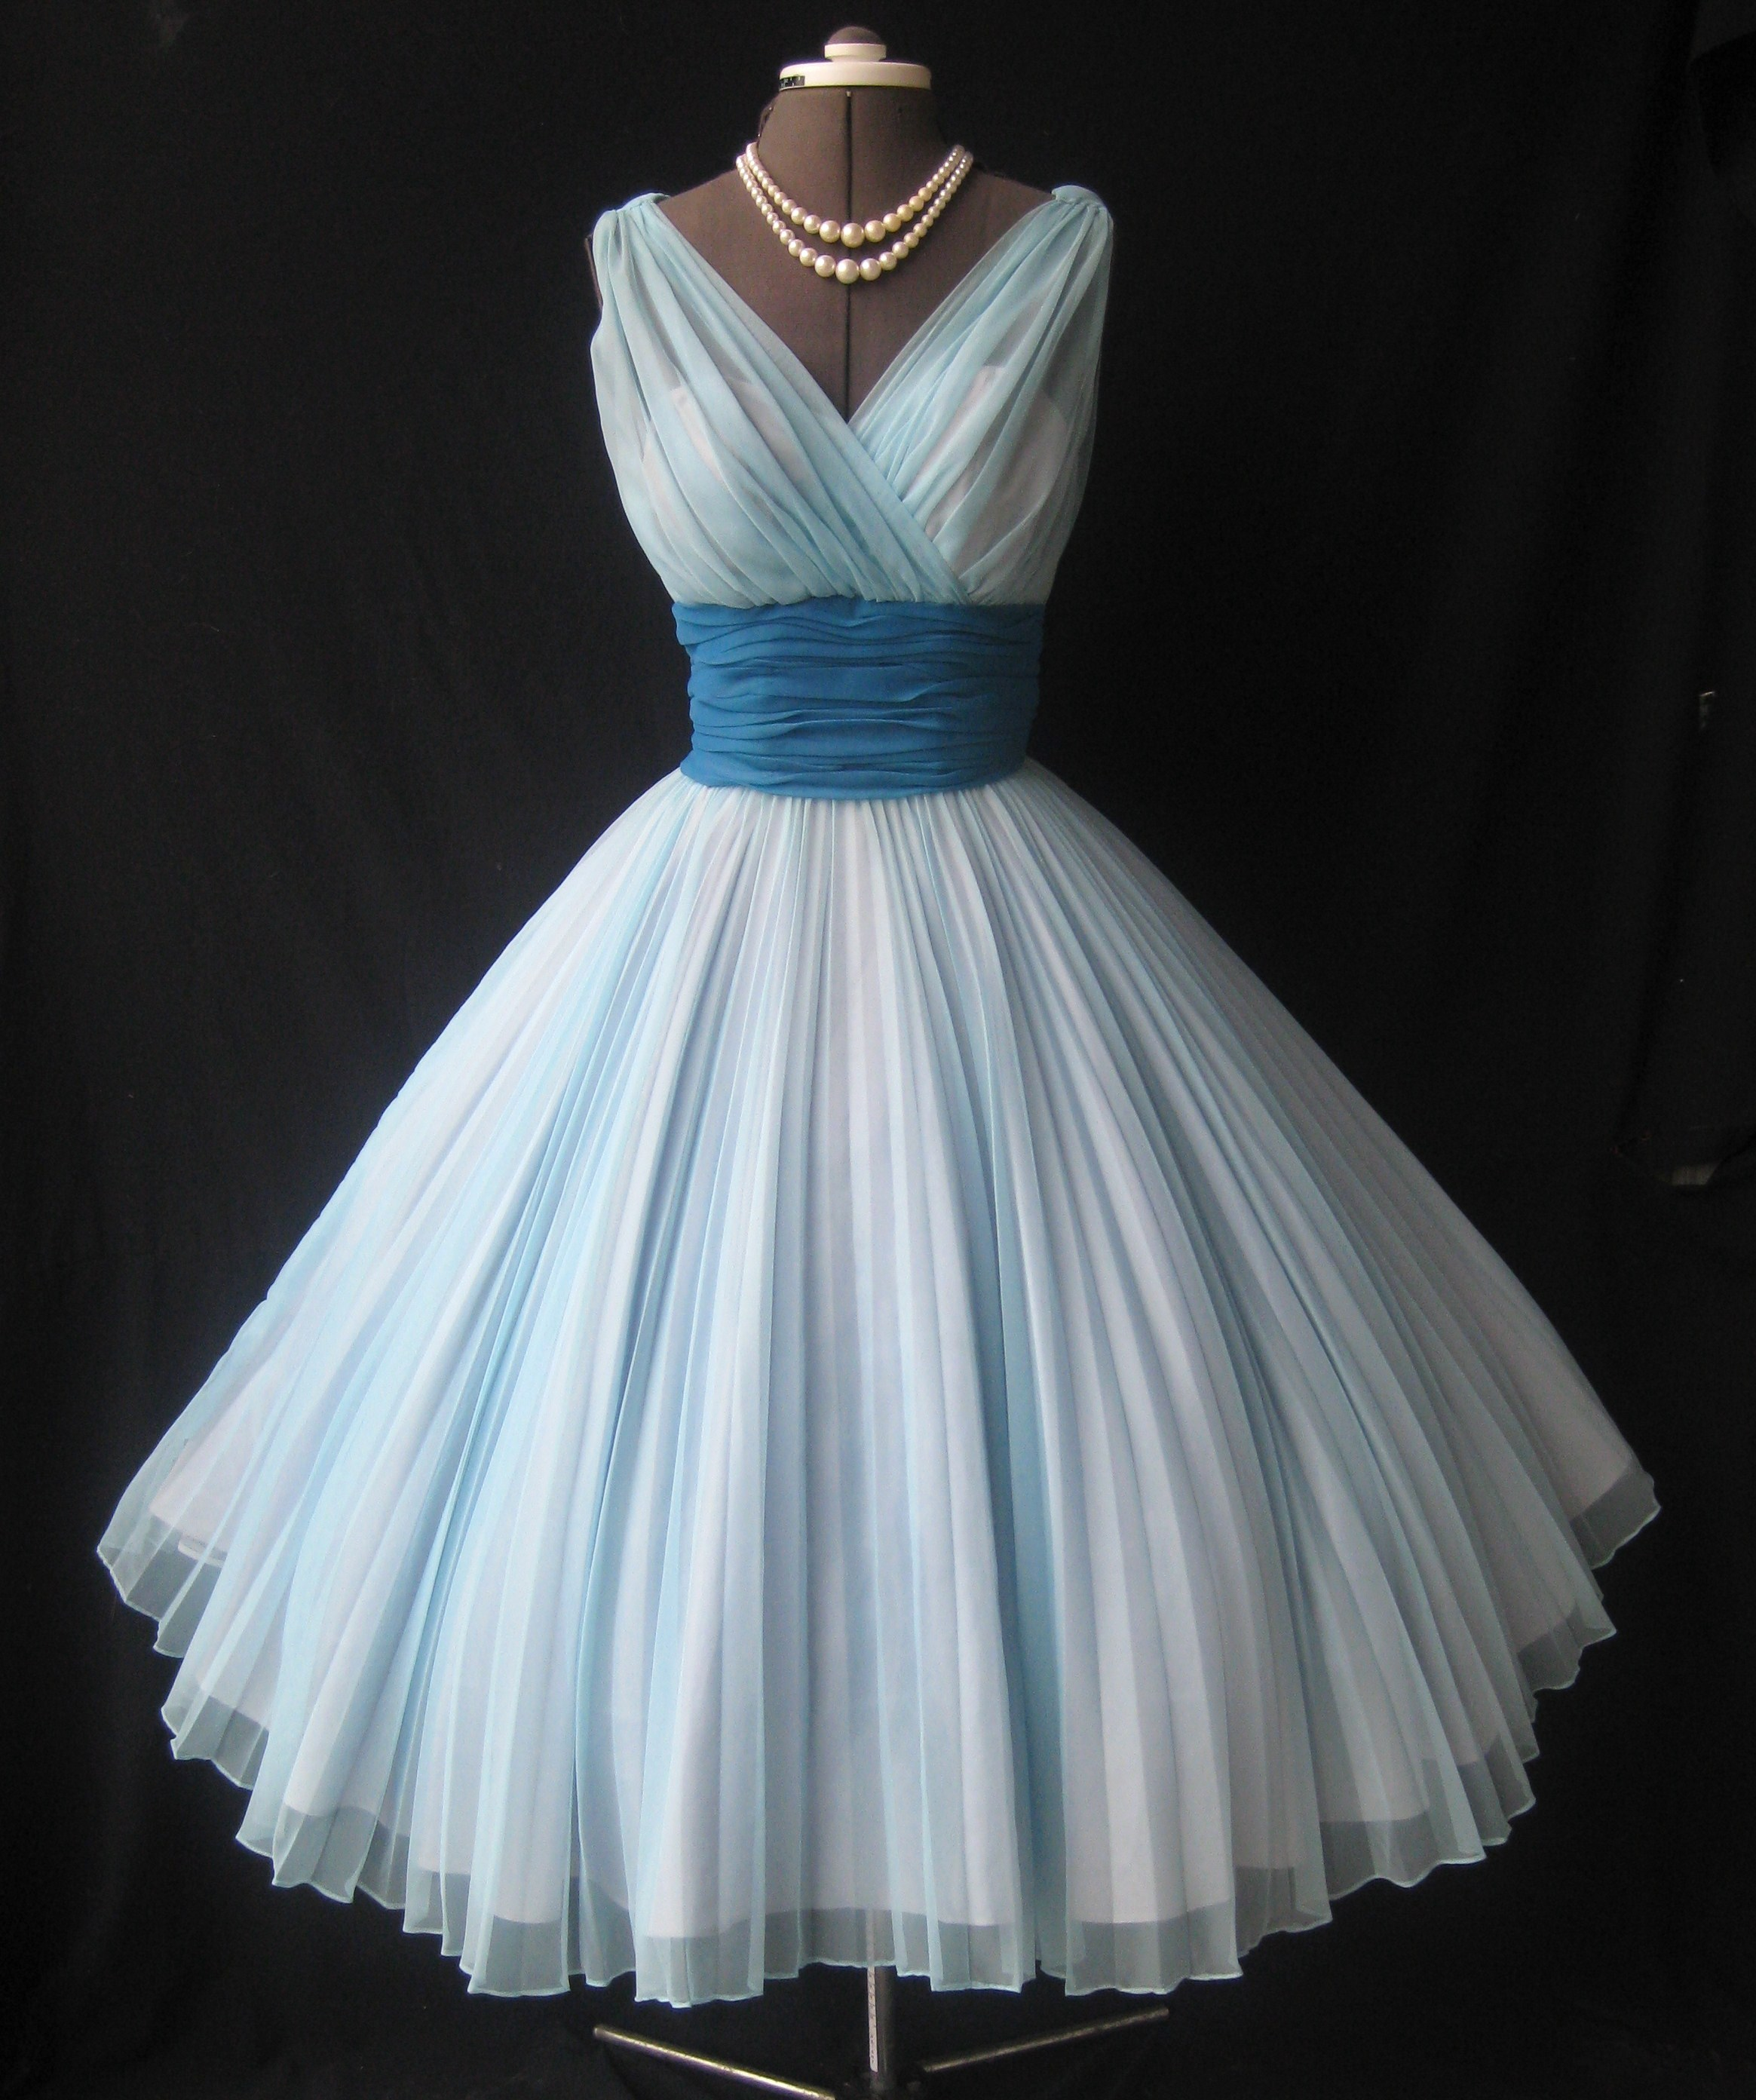 Vintage 50&39S Prom Dresses For Sale - Holiday Dresses